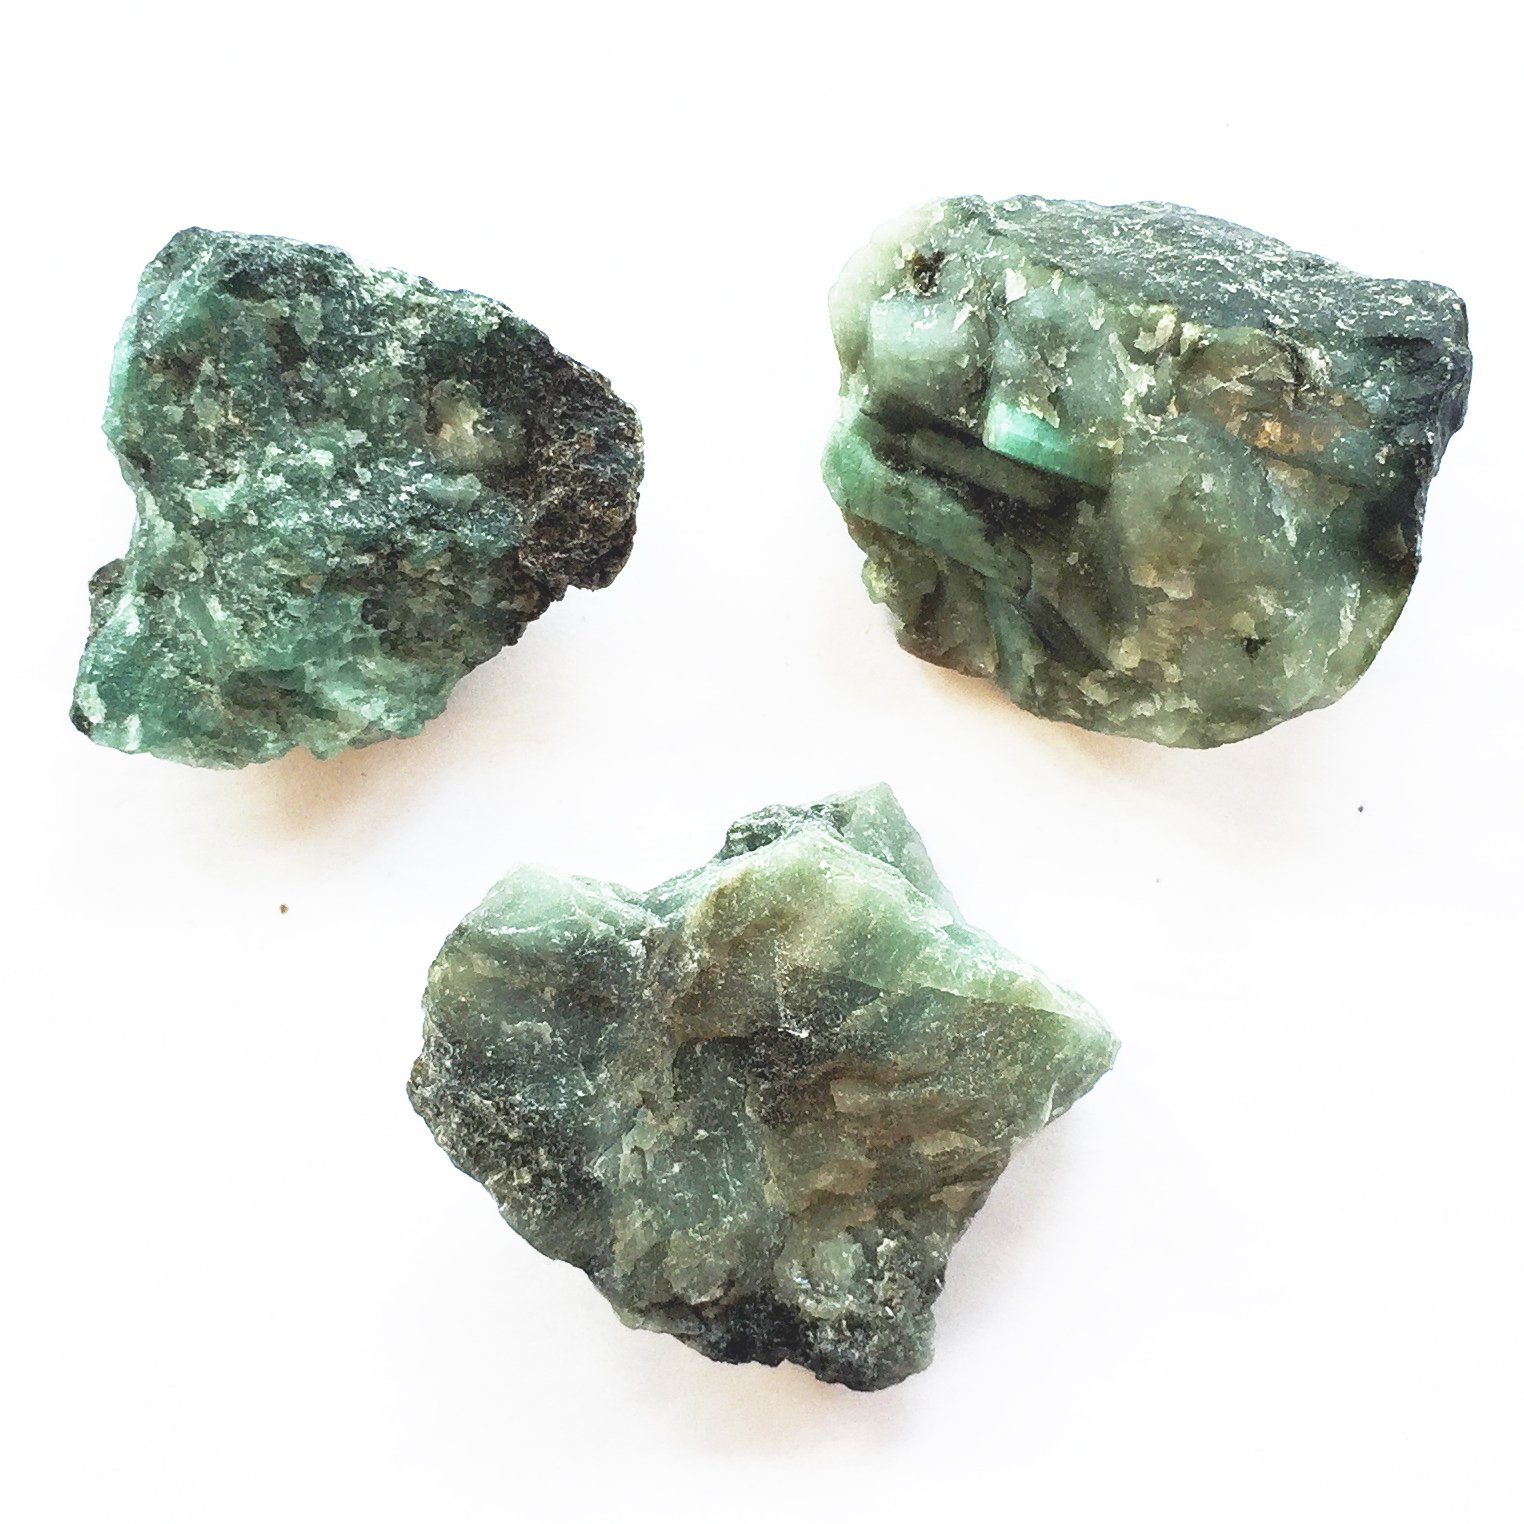 Emerald Raw Stone Crystal at HAPPY SOUL ONLINE – Happy Soul Online